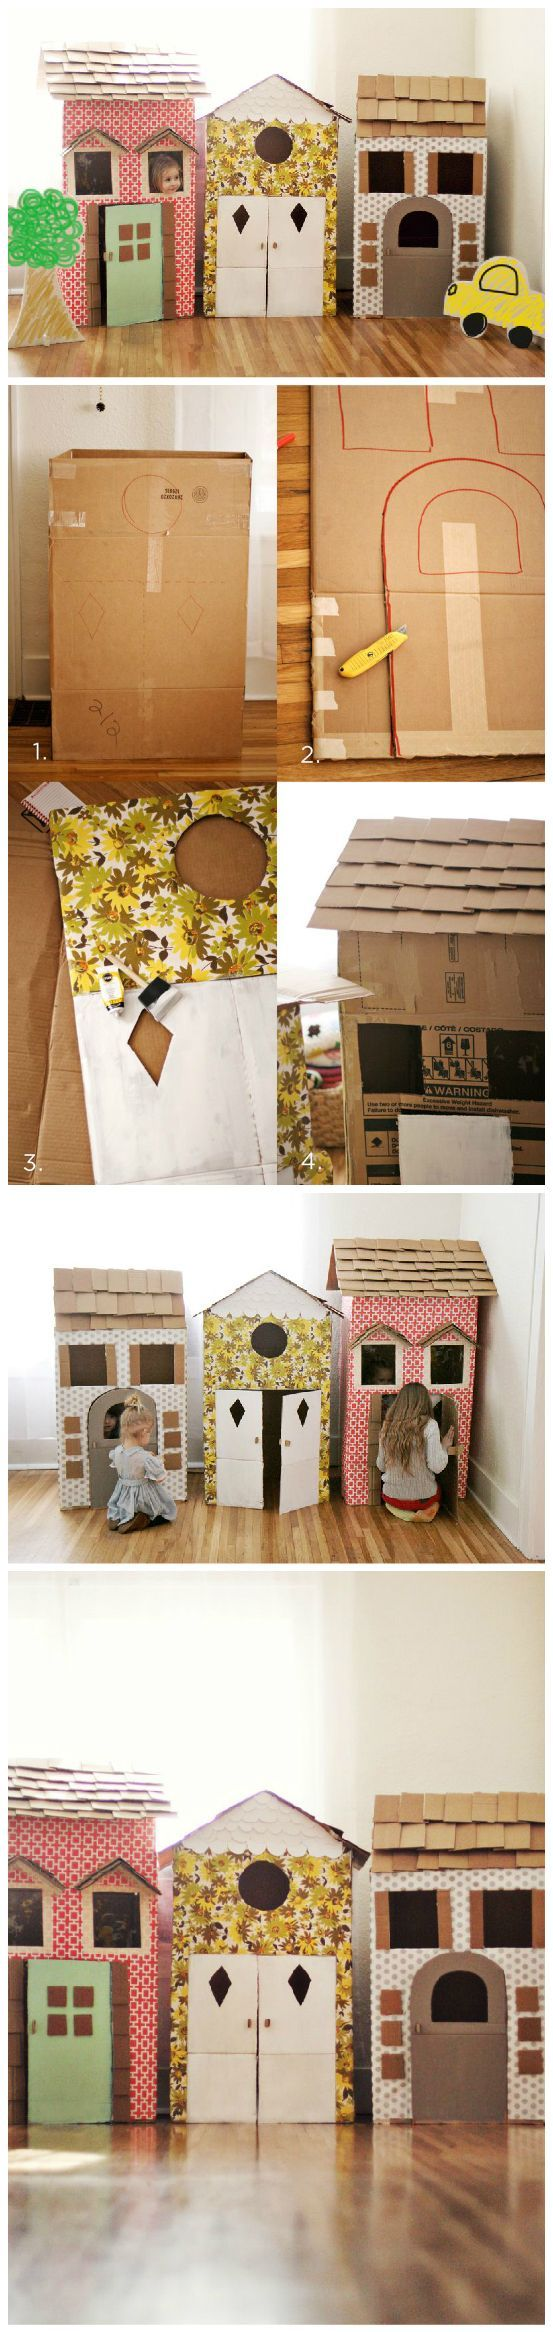 How fun is this!? DIY Cardboard Playhouses - @Elyse Exposito Exposito Exposito Exposito Woodbury Pehrson Larson of A Beautiful Mess